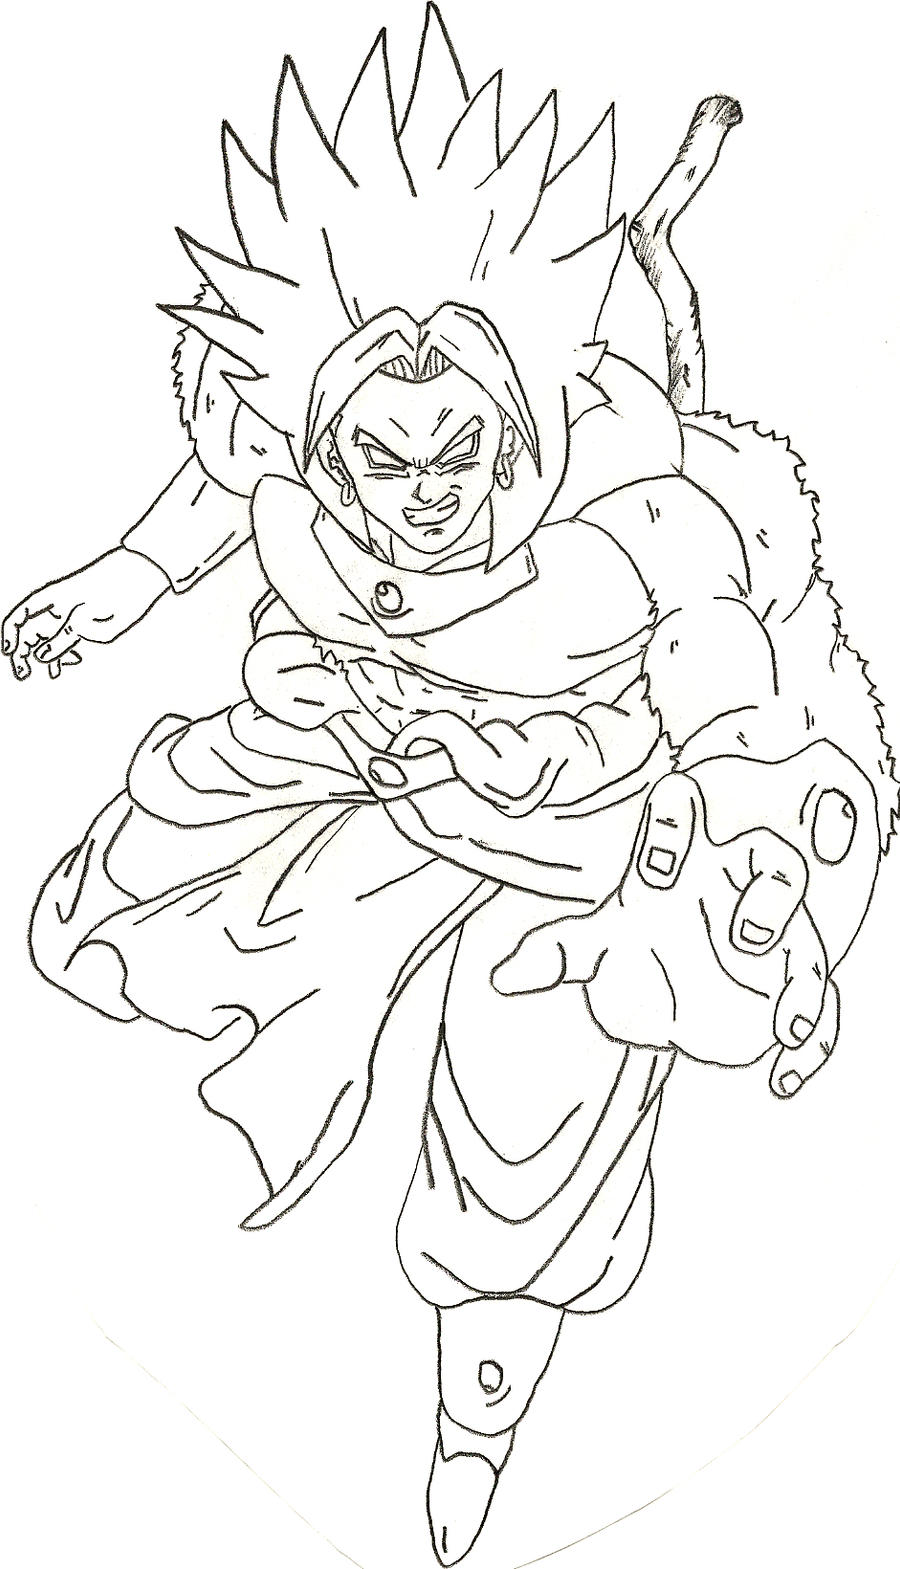 Lssj broly free coloring pages for Dragon ball z broly coloring pages